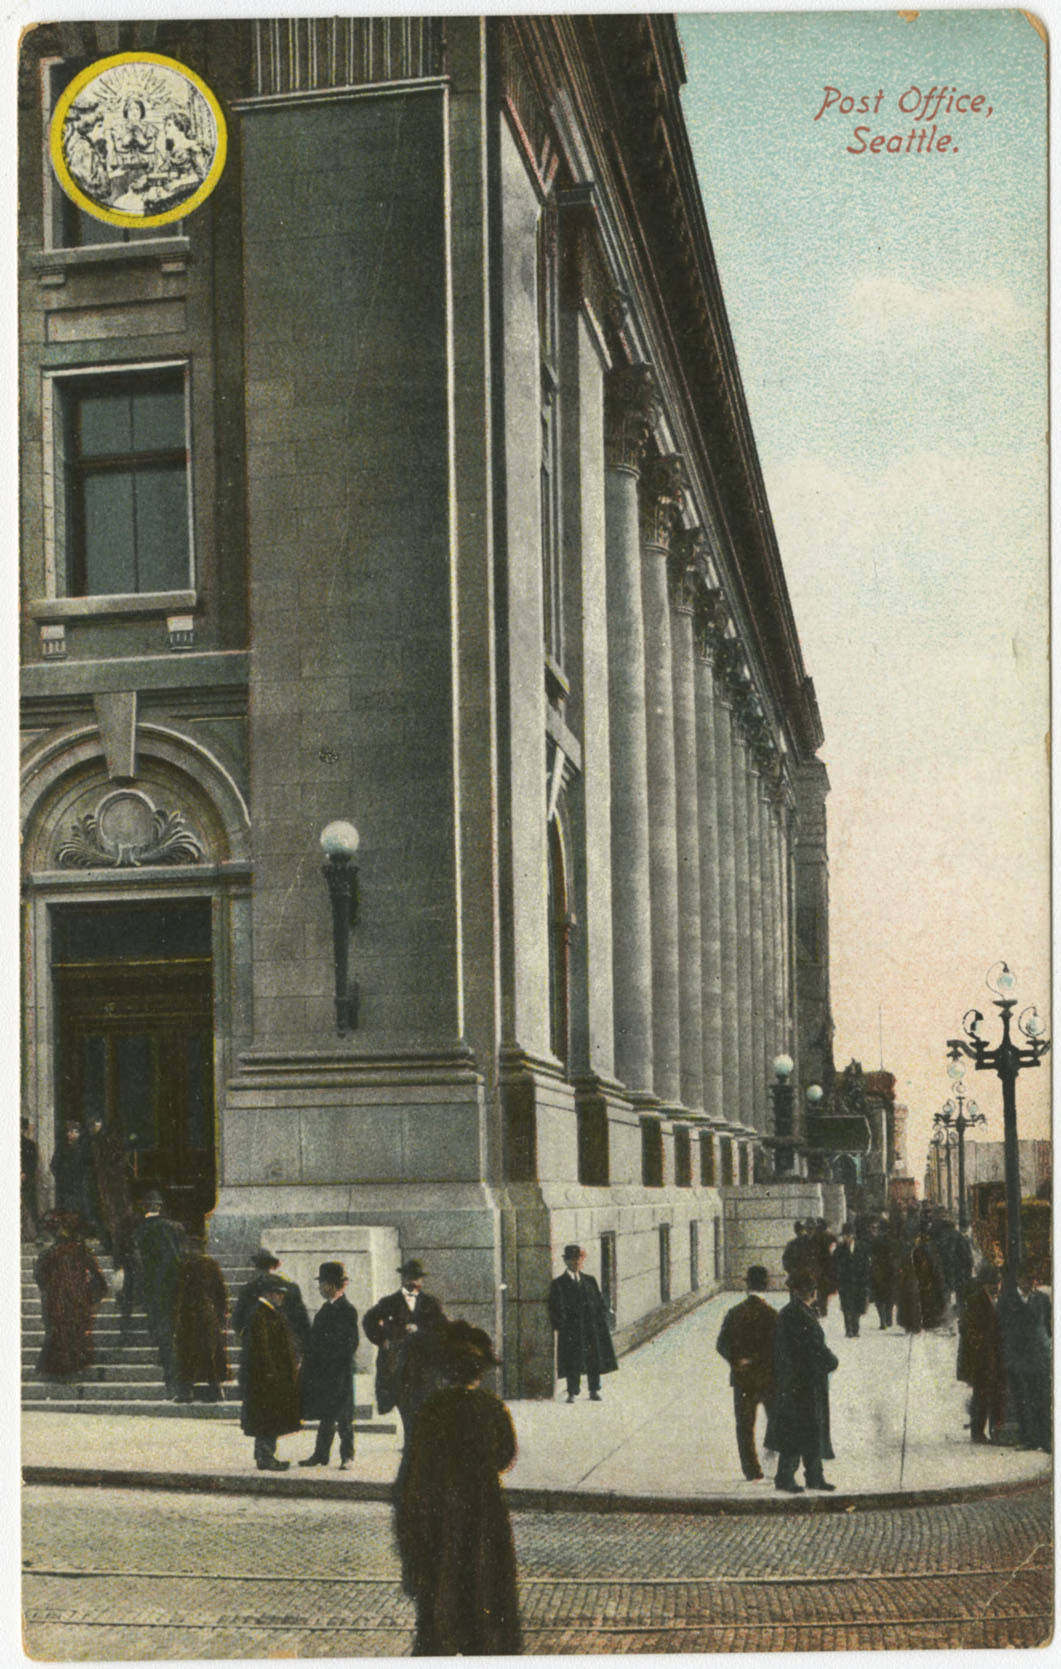 Federal Building at 3rd Ave. and Union St., ca. 1910